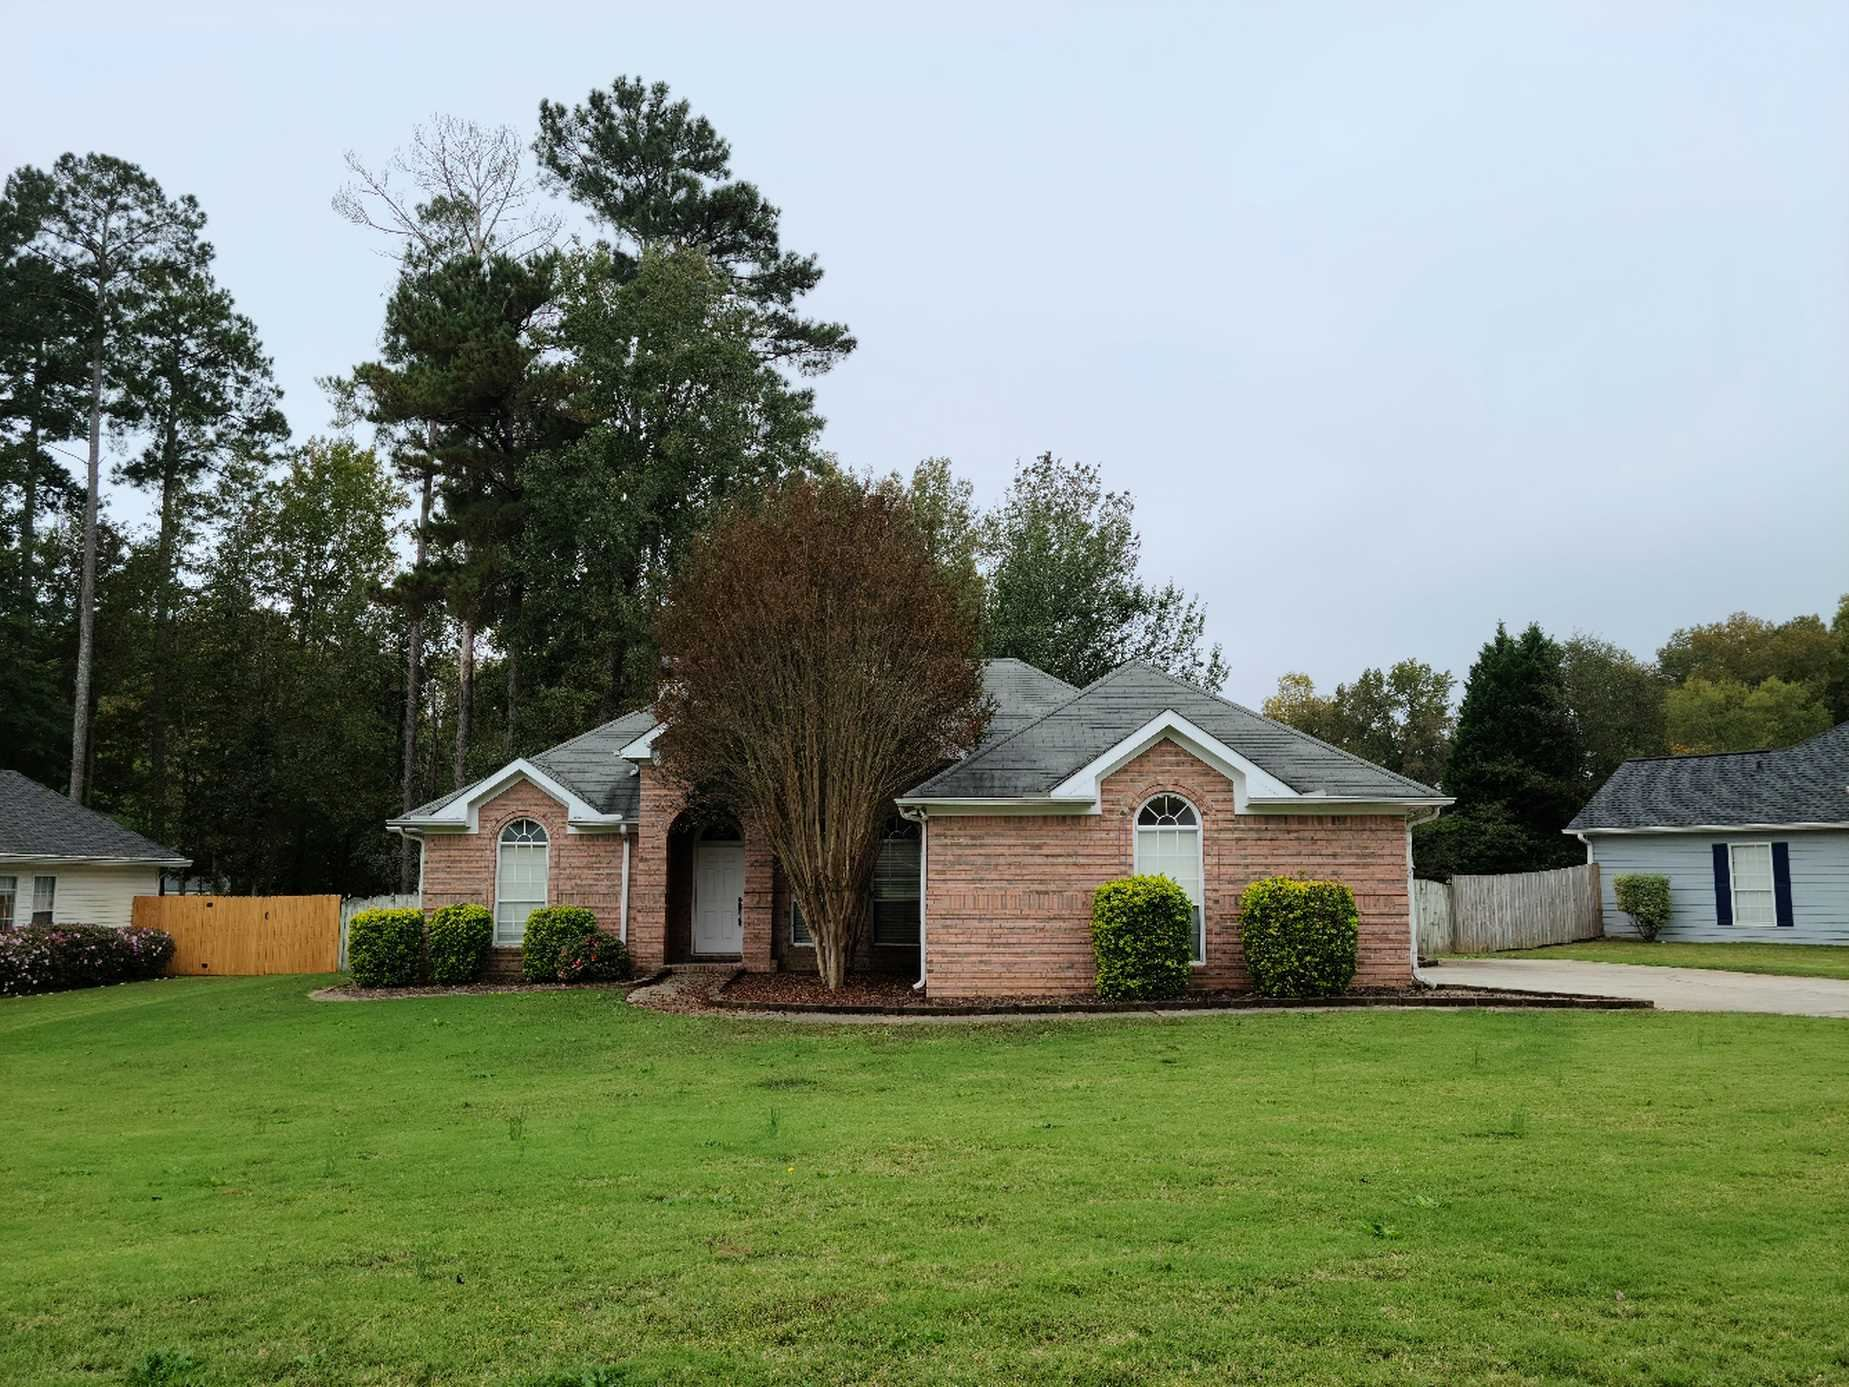 149 Brookhaven, McDonough, GA 30253 - MLS#: 8879631